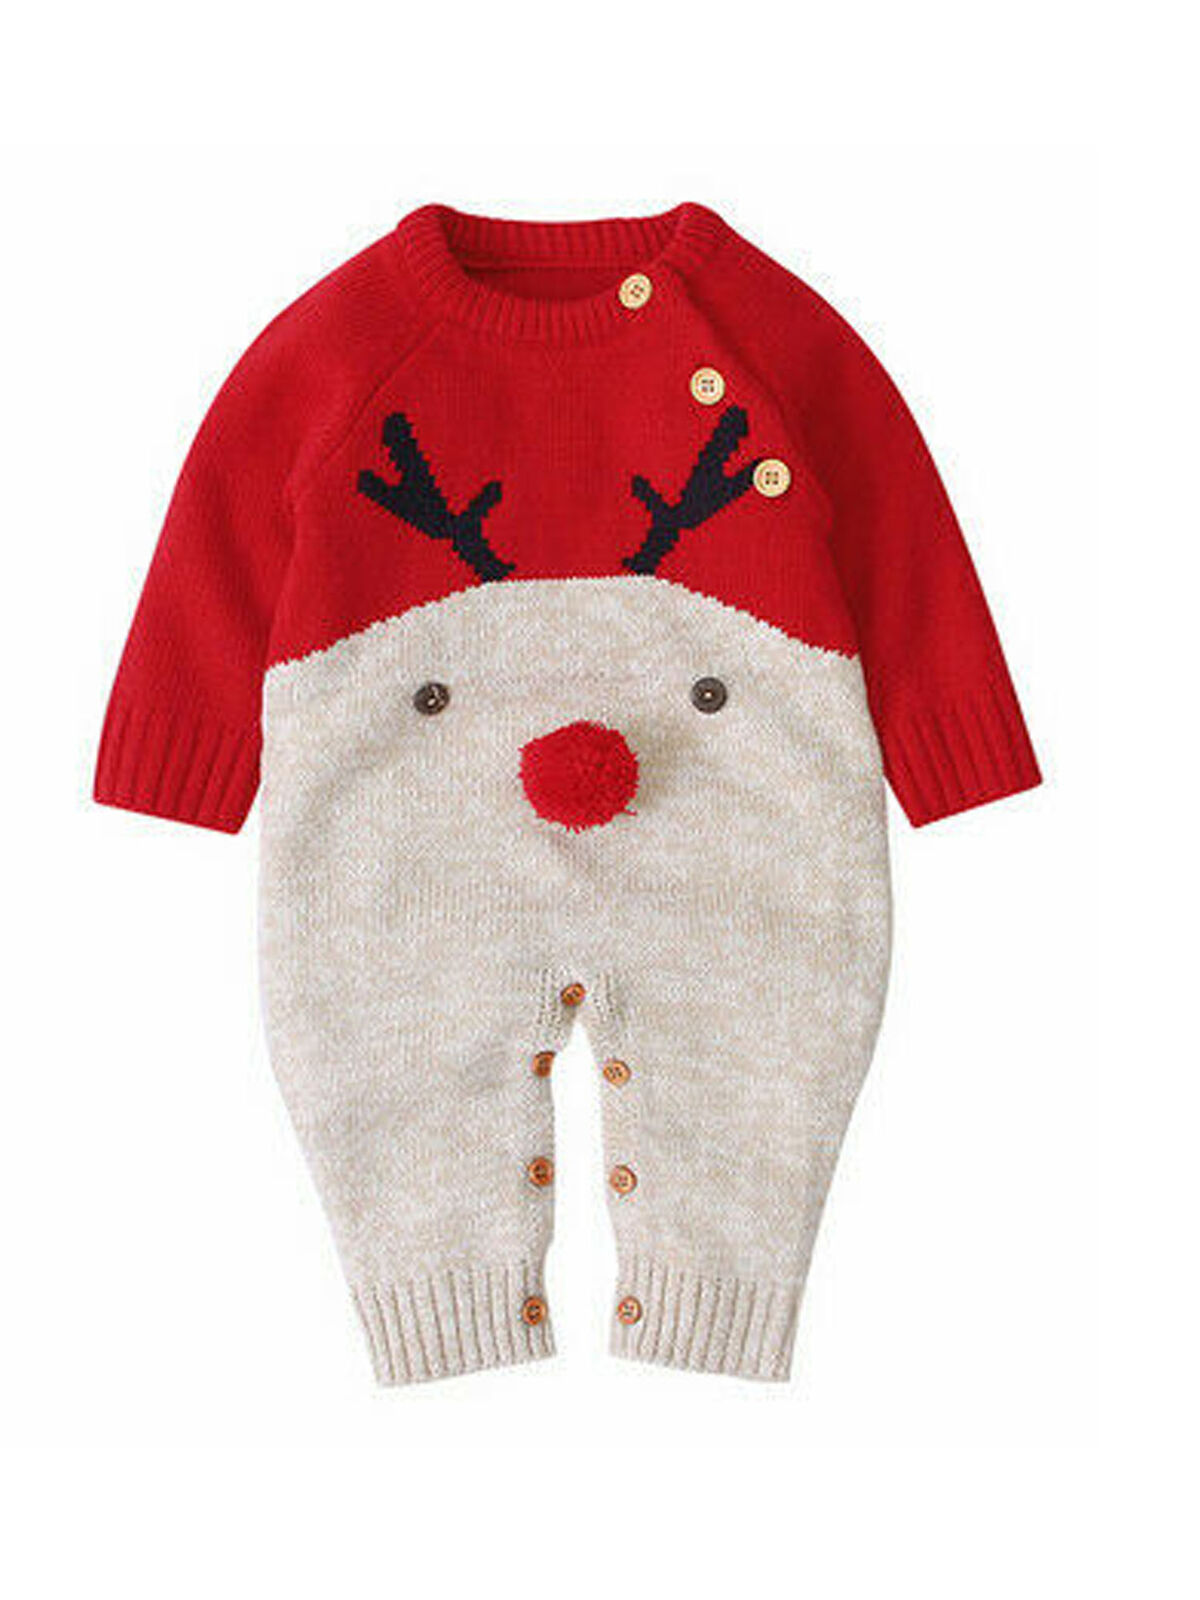 Boys Girls Boys Sweater Overall Long Sleeve Baby Christmas Jumper Winter Reindeer Outfit Jumpsuit for 4-22 Month HOMEBABY Baby Christmas Deer Warm Rompers